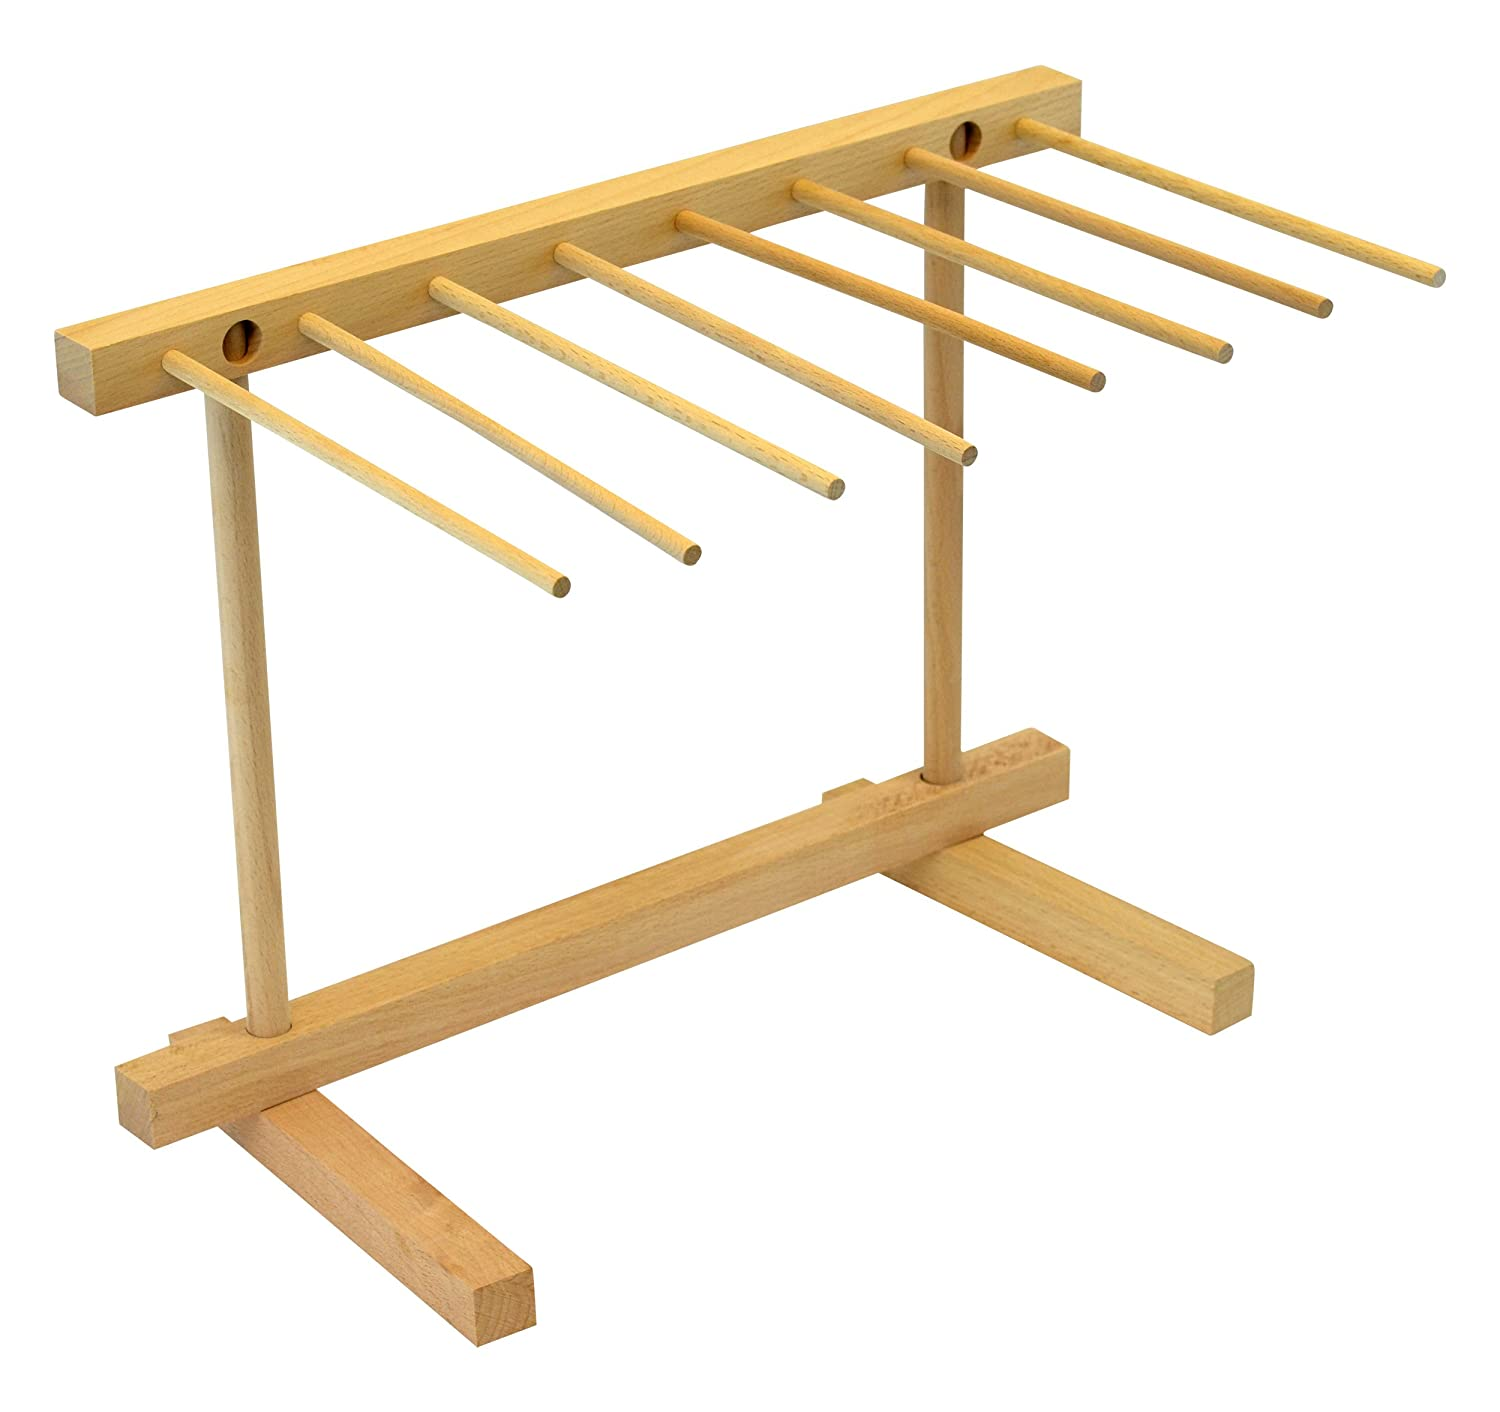 Southern Homewares Southern Homewares Collapsible Wooden Pasta Drying Rack, Natural Beechwood